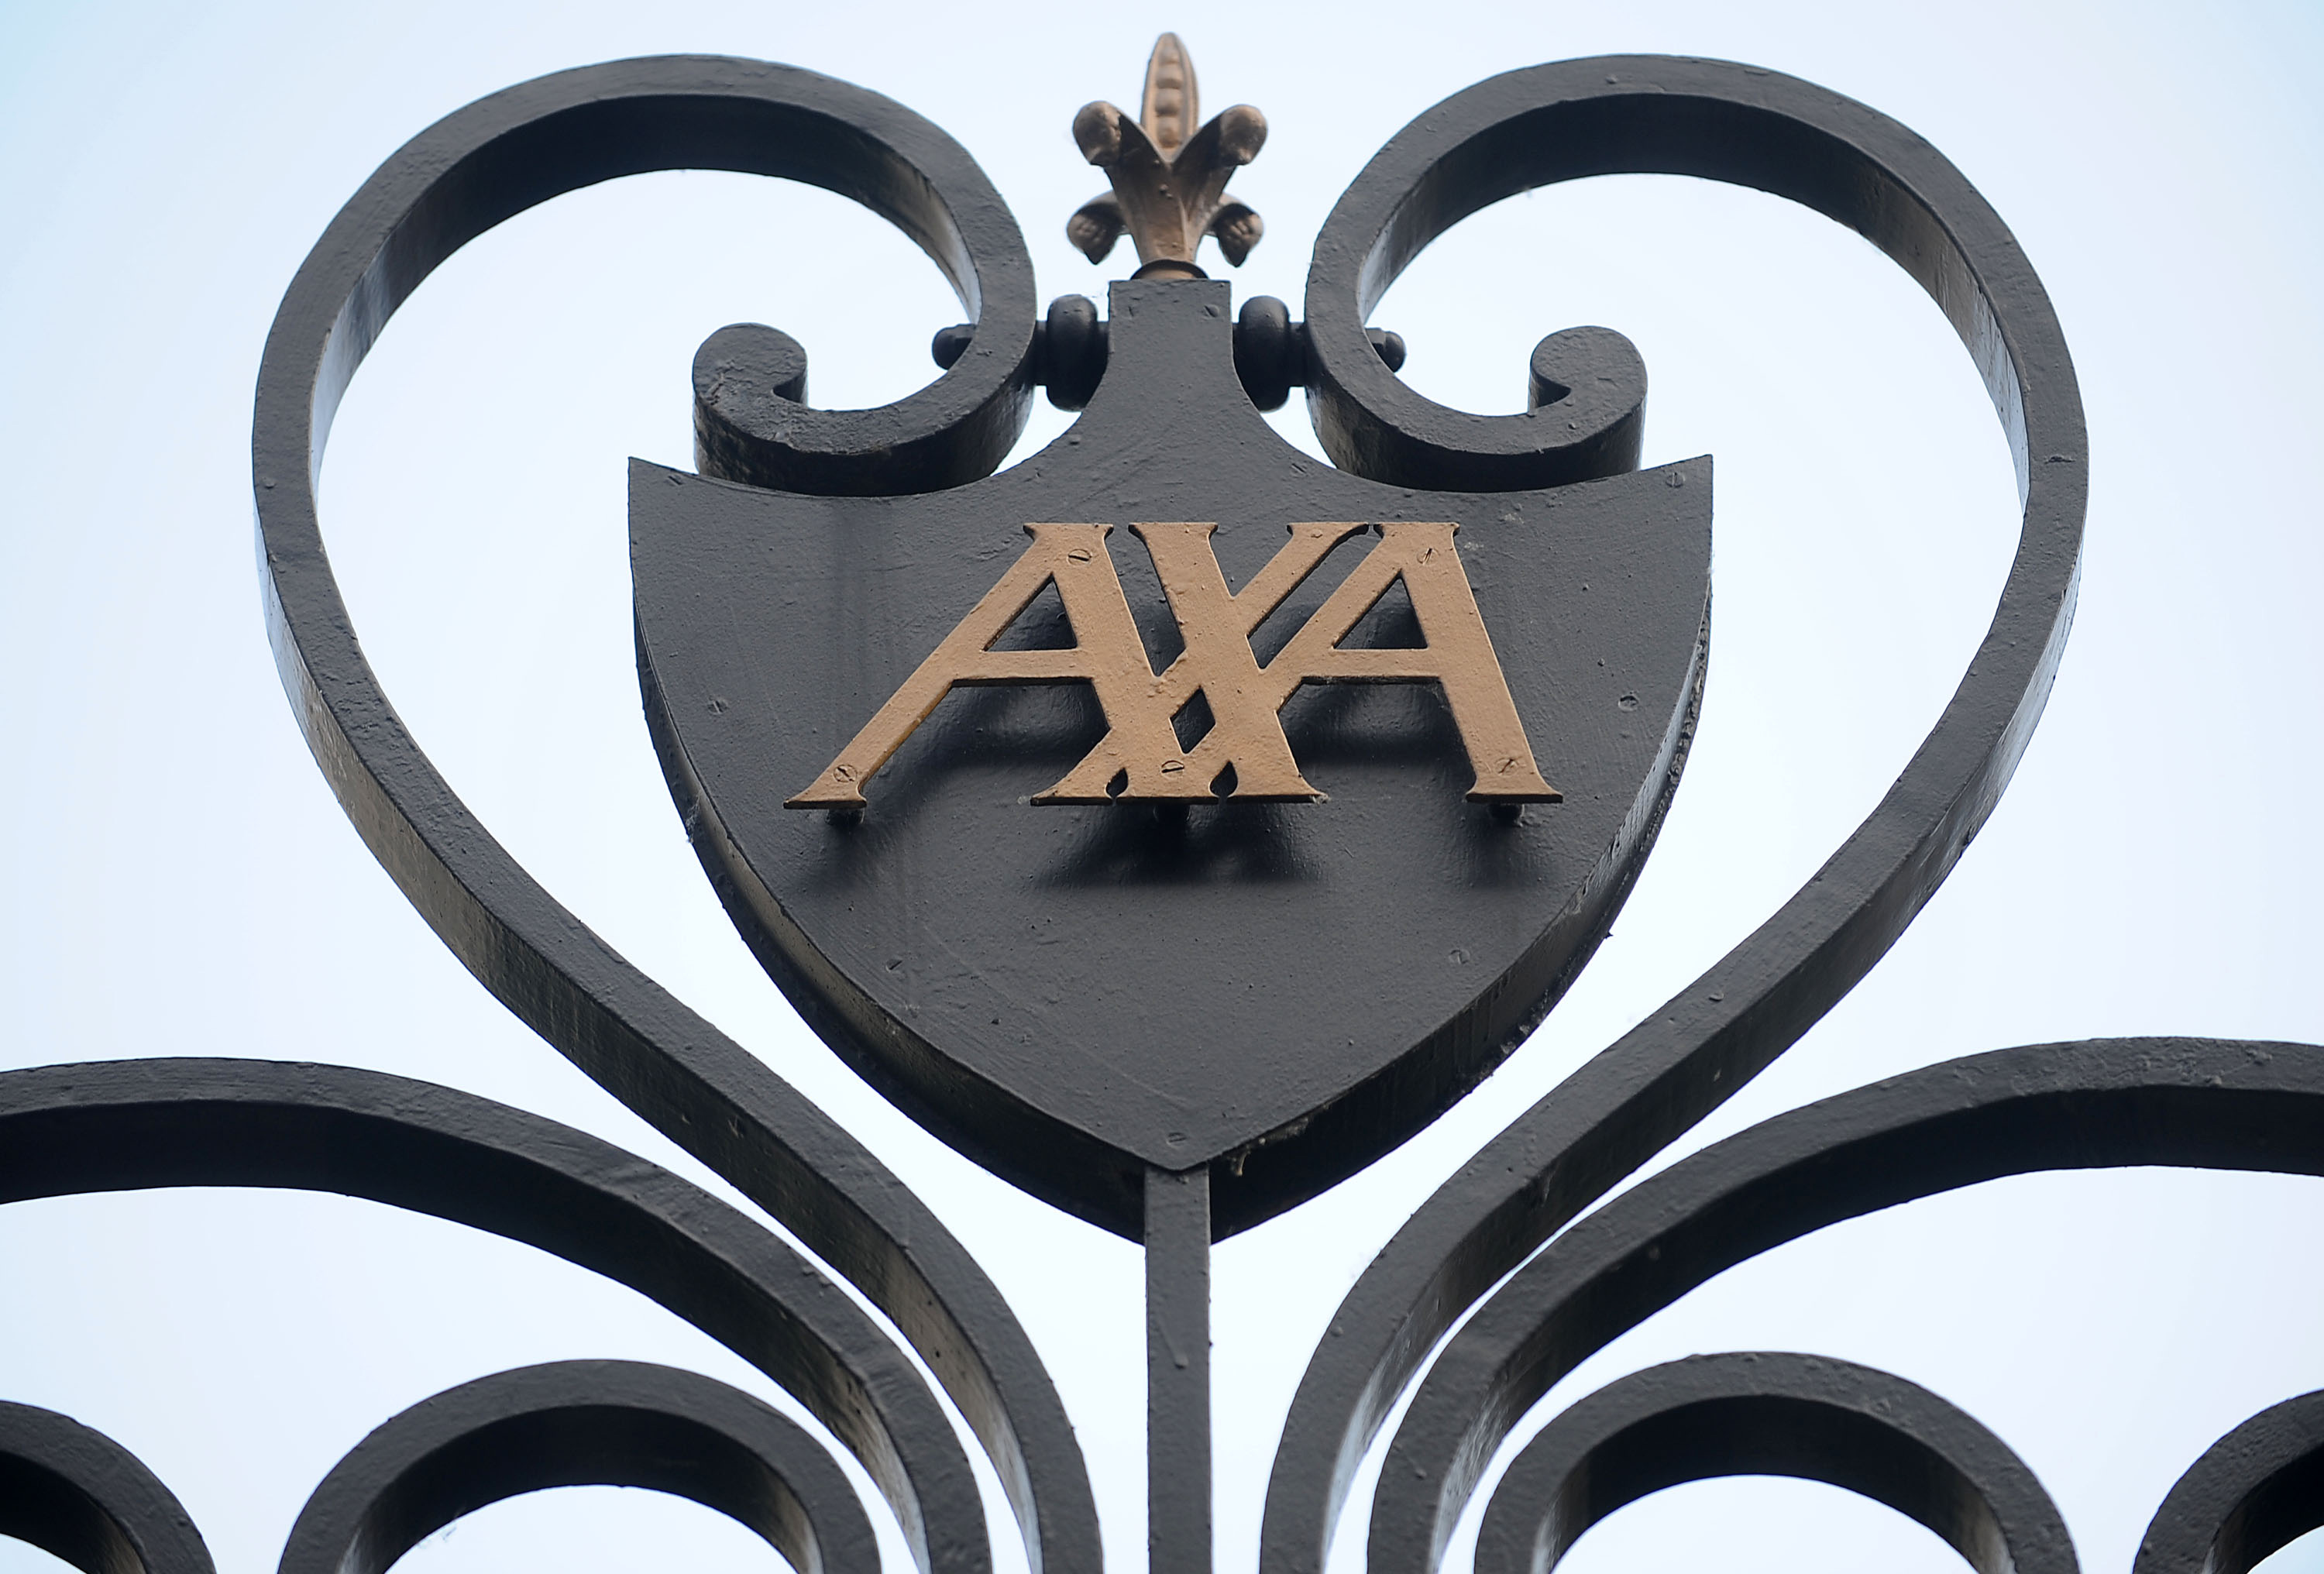 French Insurer AXA Agrees to Buy XL Group for $15.3 Billion